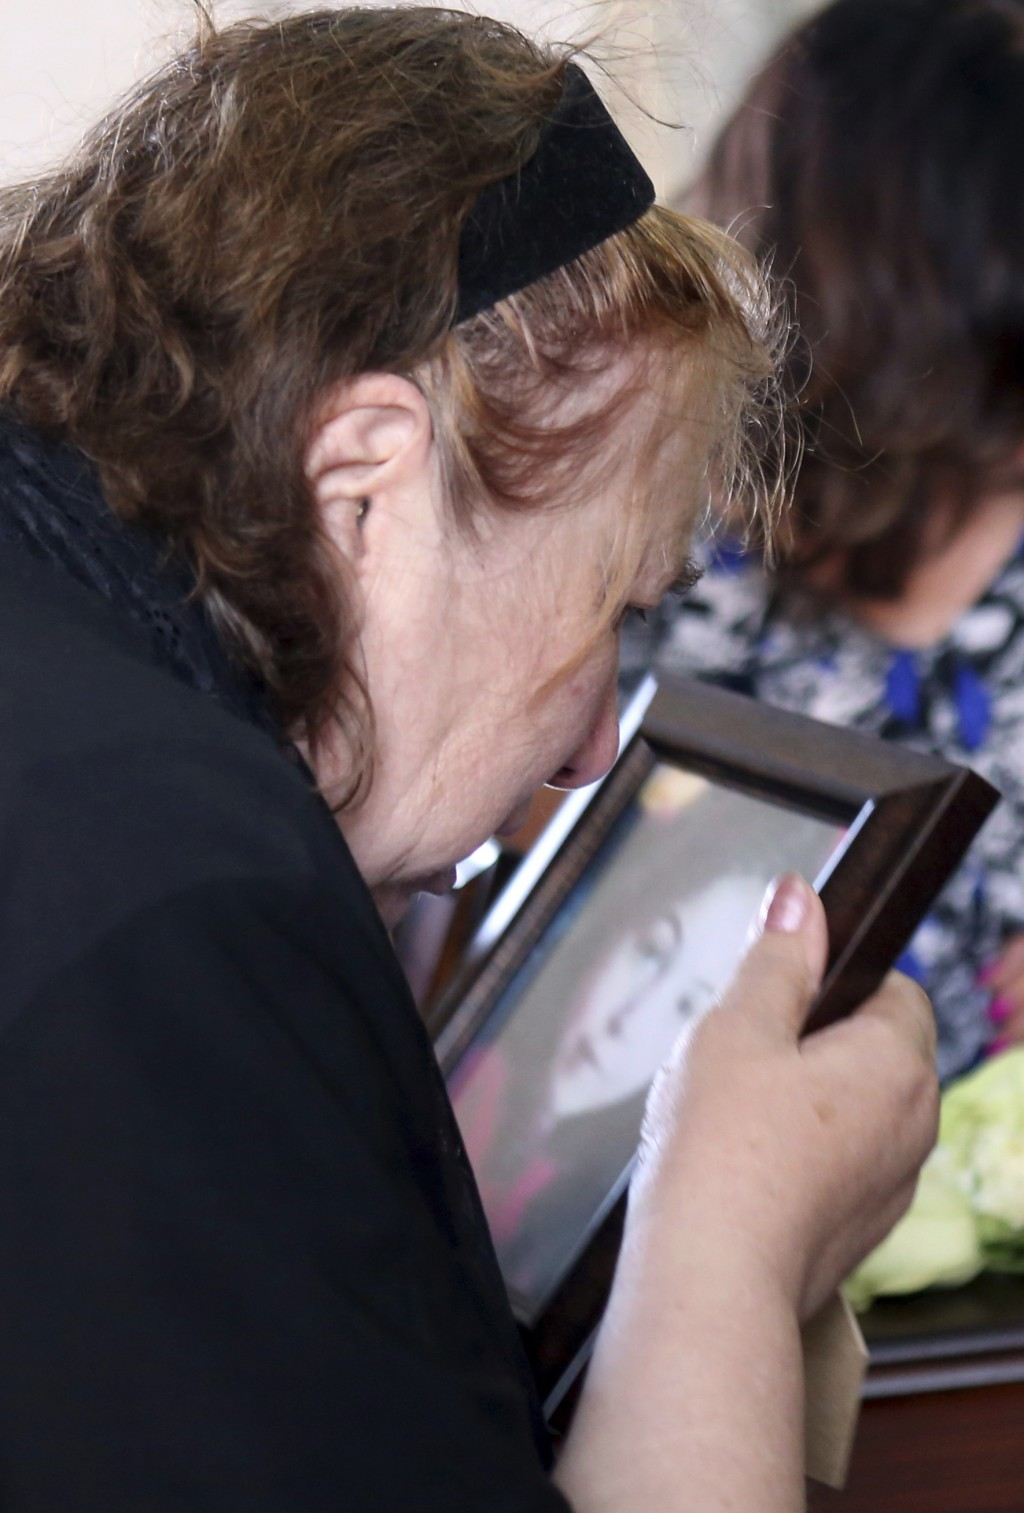 The grandmother of eight year-old Elena Natalia Bunea leans over to kiss a photograph of the child during the funeral of the girl and her mother Livia